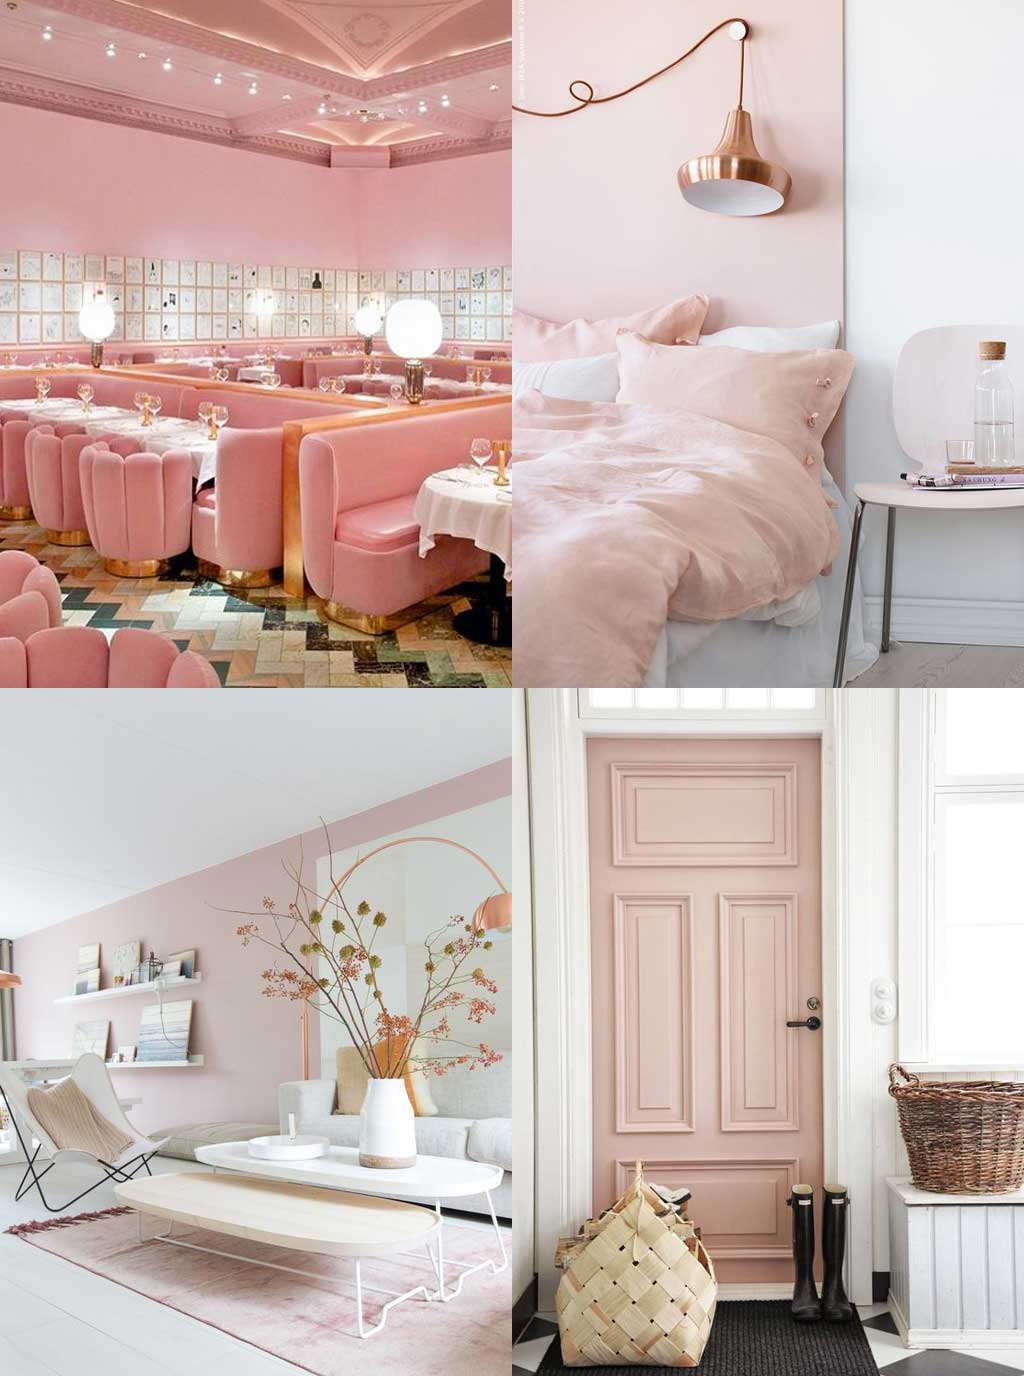 Colour Psychology in Interior Design - Pink Rooms - Hutsly Blog